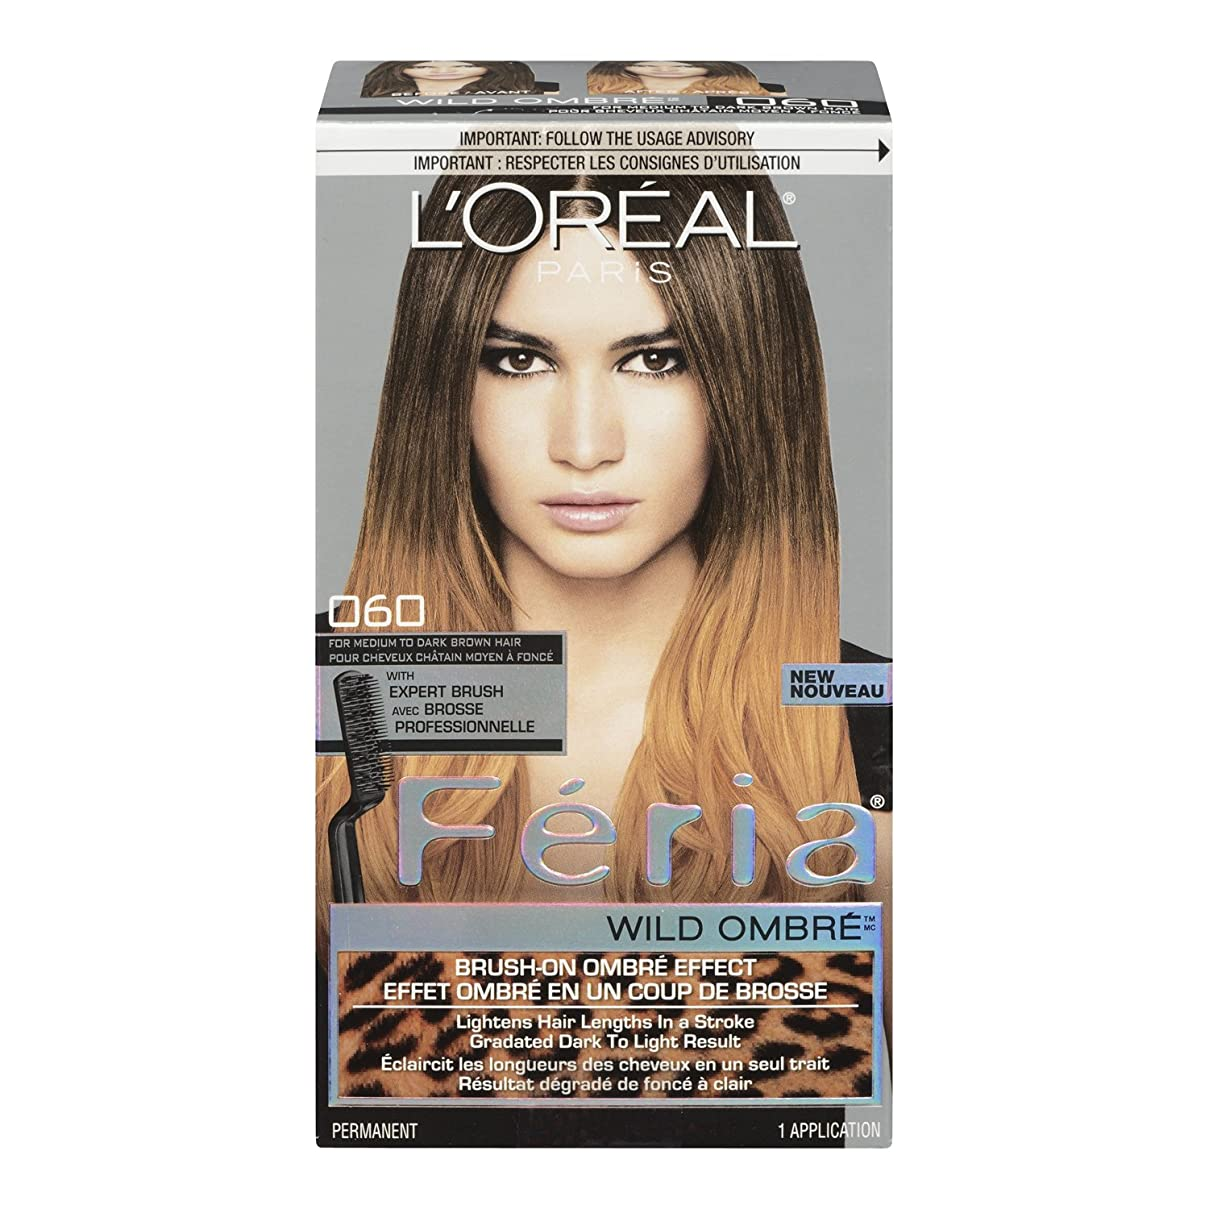 コントロール切断する石油L'Oreal Feria Wild Ombre Hair Color, O60 Medium to Dark Brown by L'Oreal Paris Hair Color [並行輸入品]